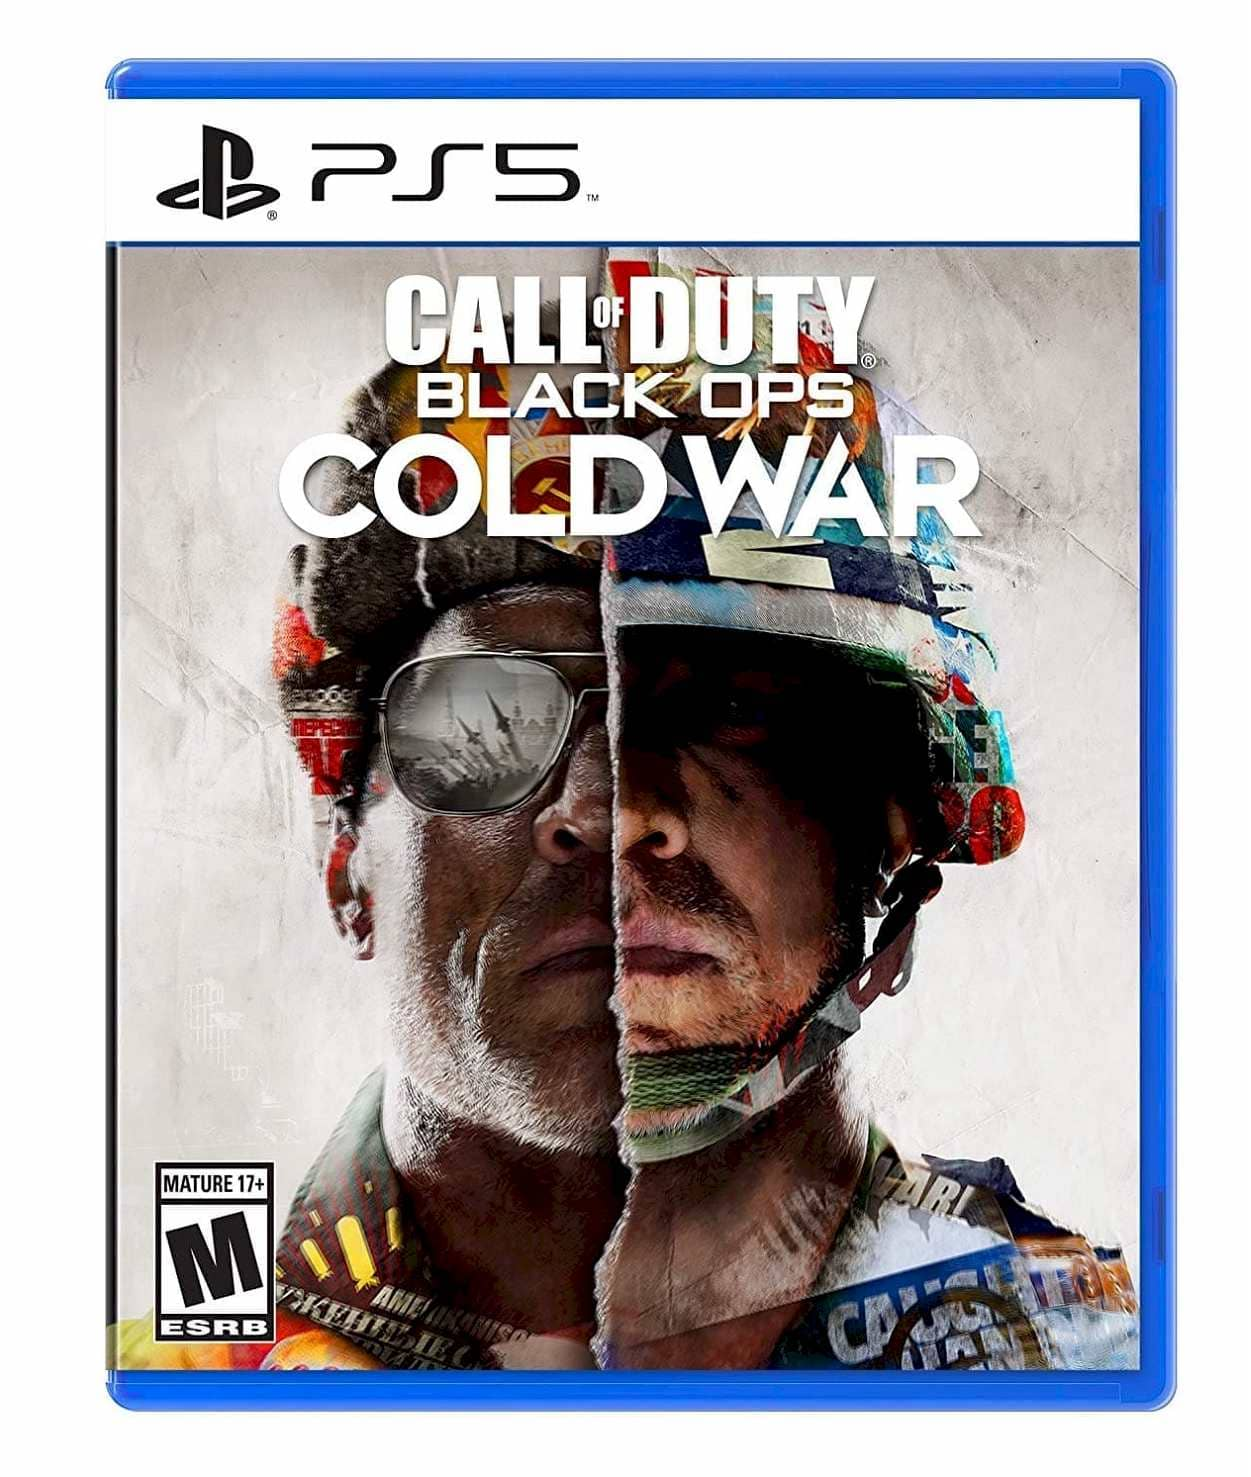 Playstation 5 - Call of Duty: Black Ops Cold War - #PS5  #playstation #games